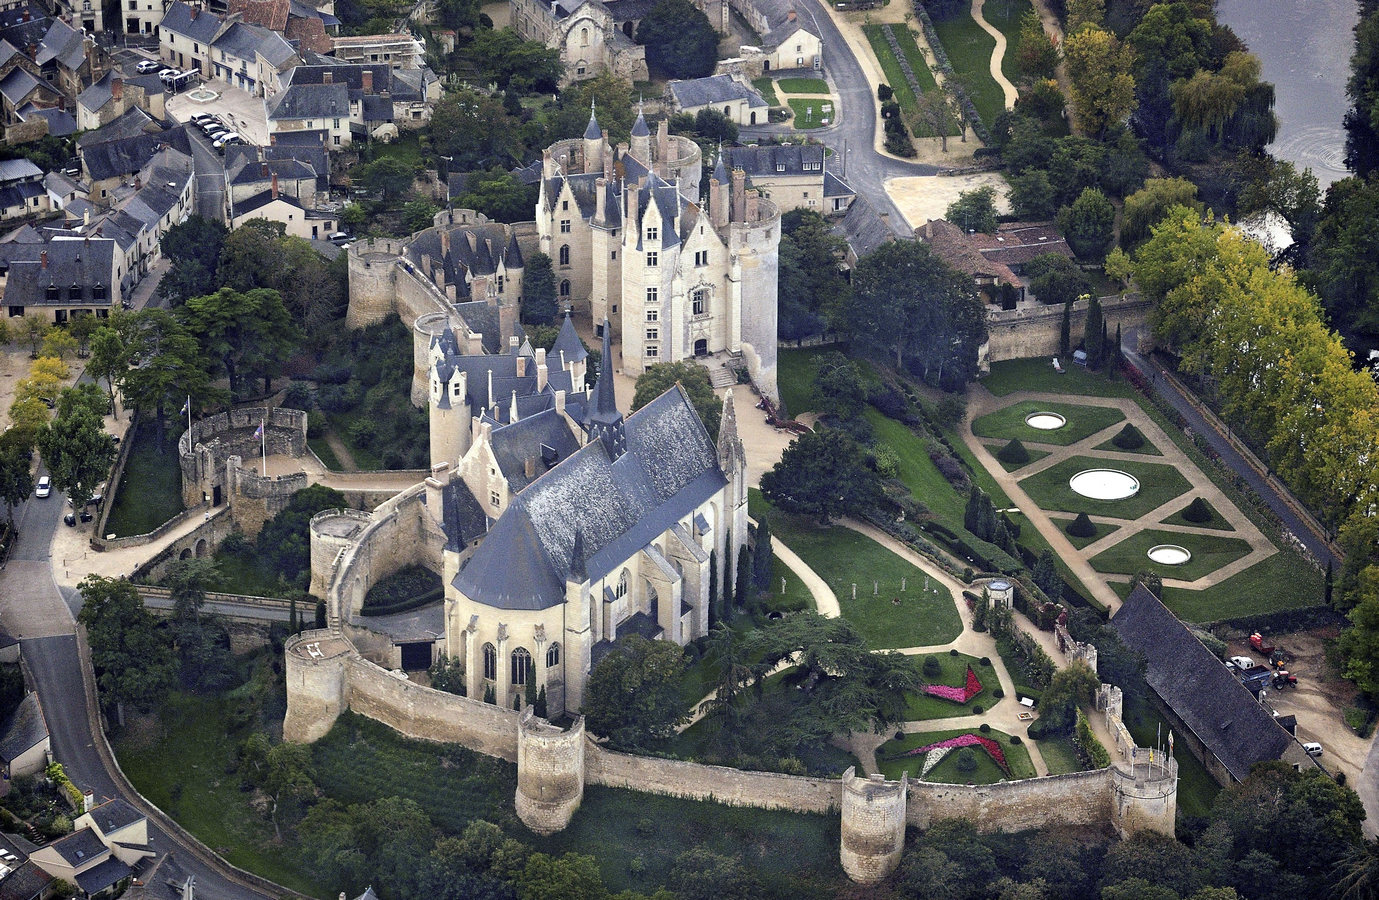 Montreuil-Bellay_castle,_aerial_view_-_рRetouched.jpg